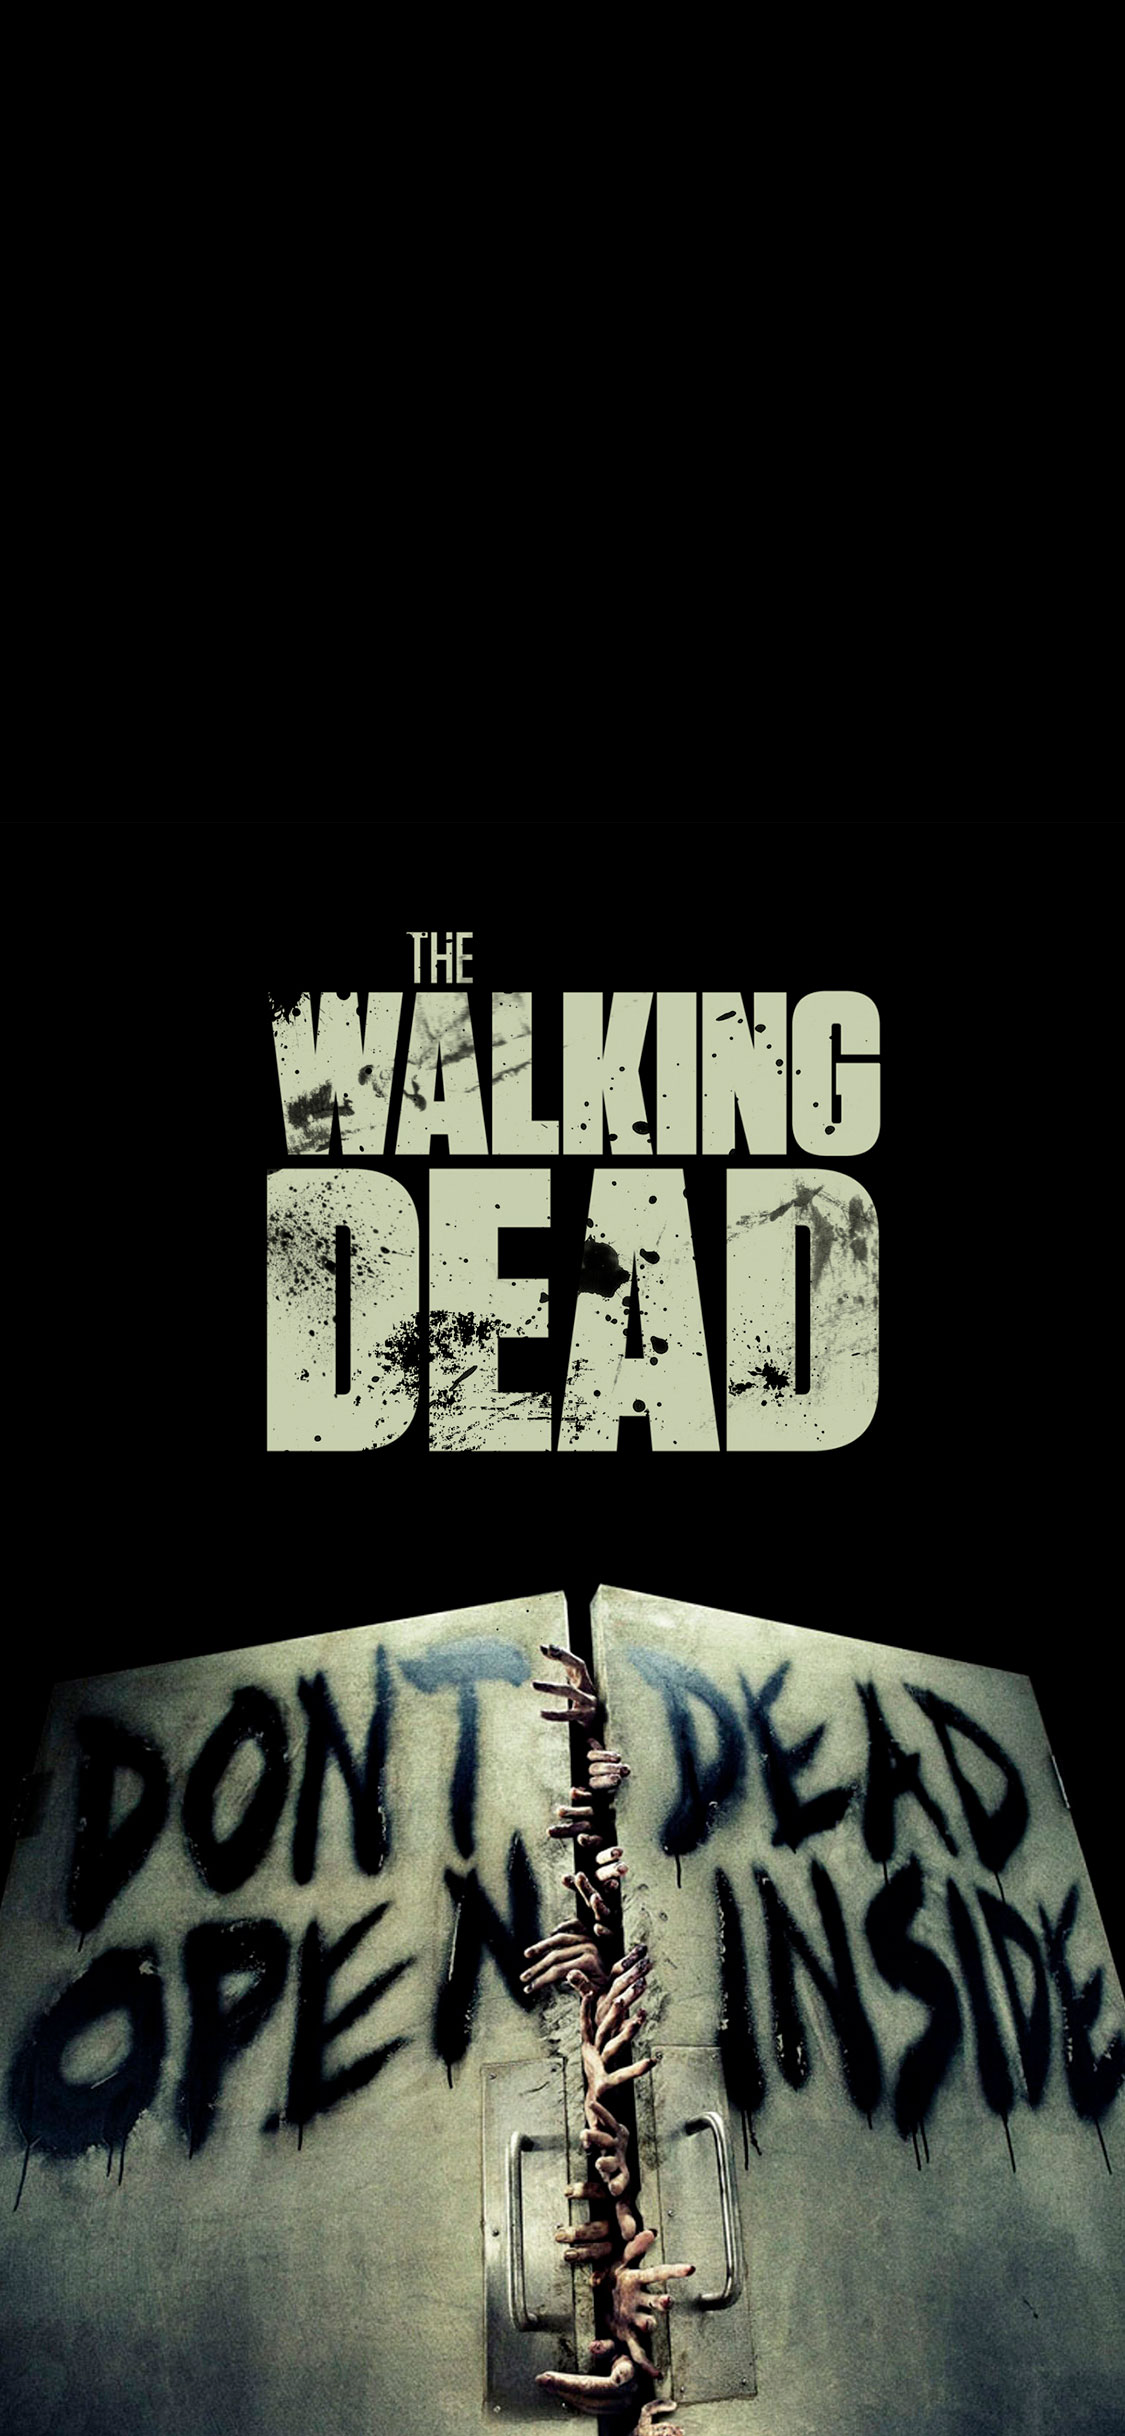 the walking dead wallpaper for iphone x, 8, 7, 6 - free download on